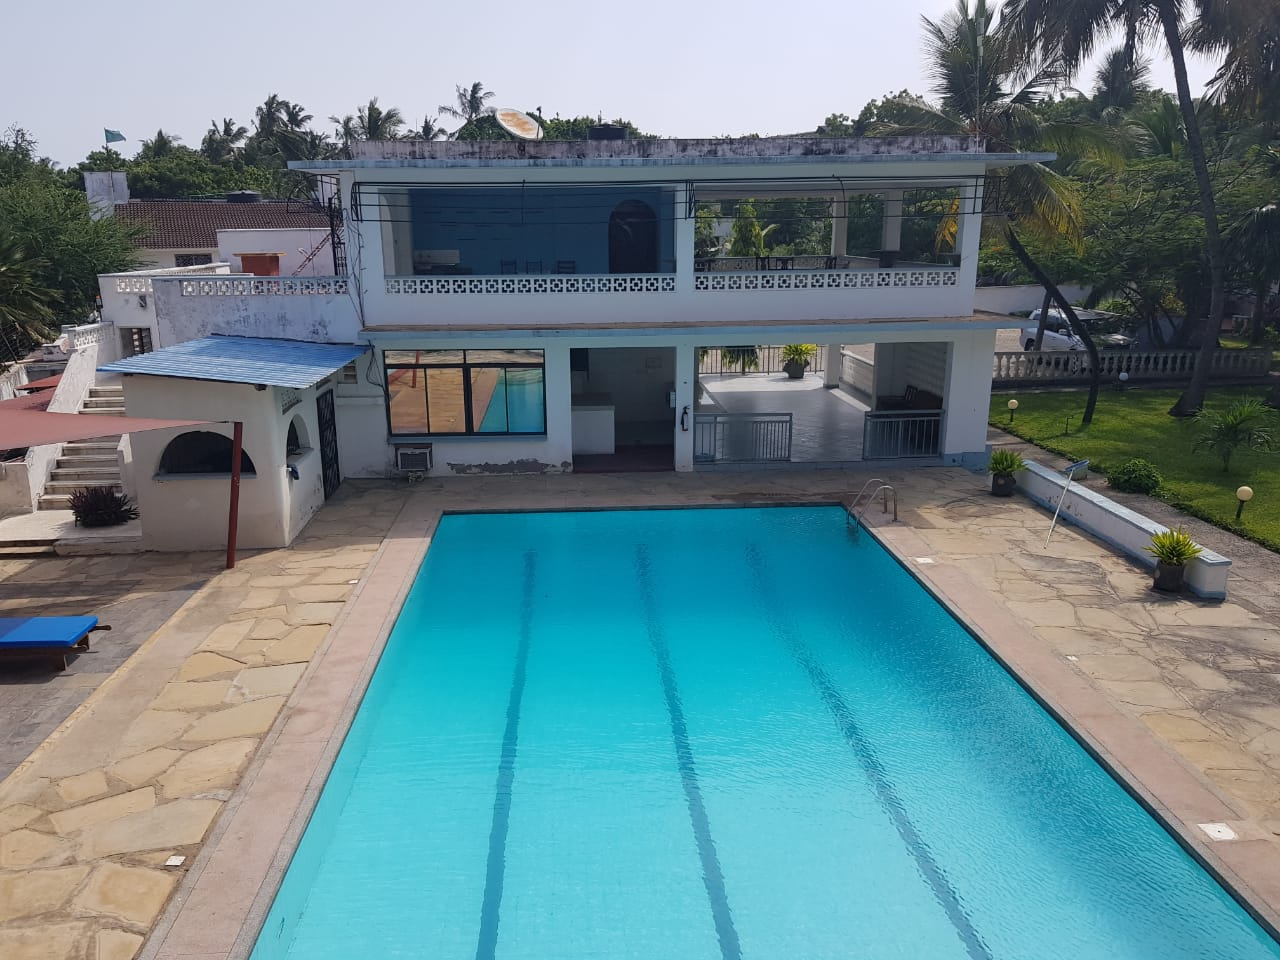 1 bedroom furnished apartments for rent in Nyali-(PARADISE)